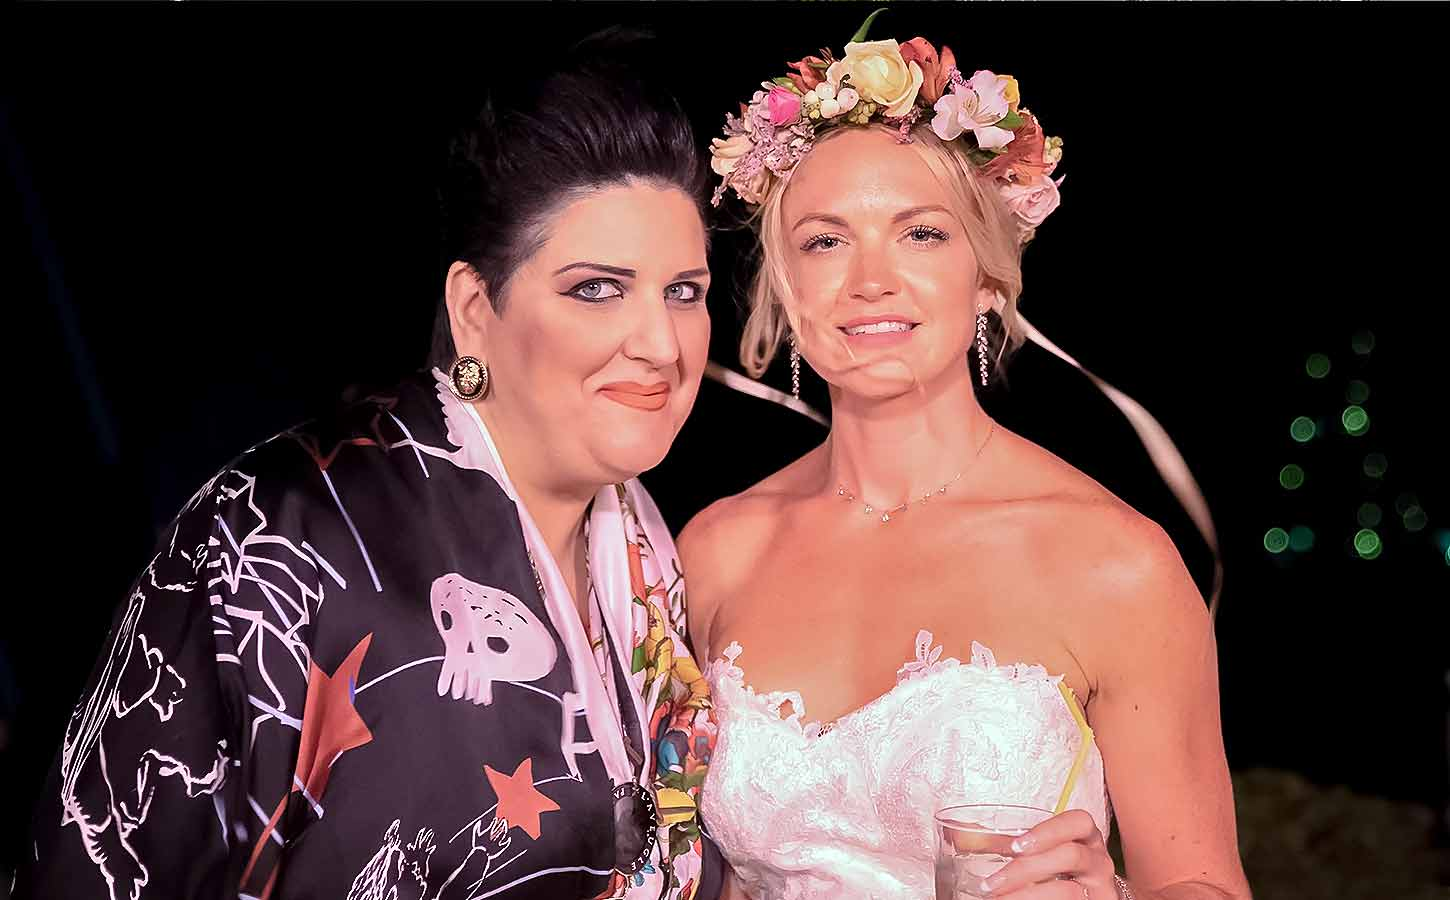 Anna-Maria-Rogdaki-Founder-and-designer-of-Diamond-Events with Hannah in her wedding in Mykonos